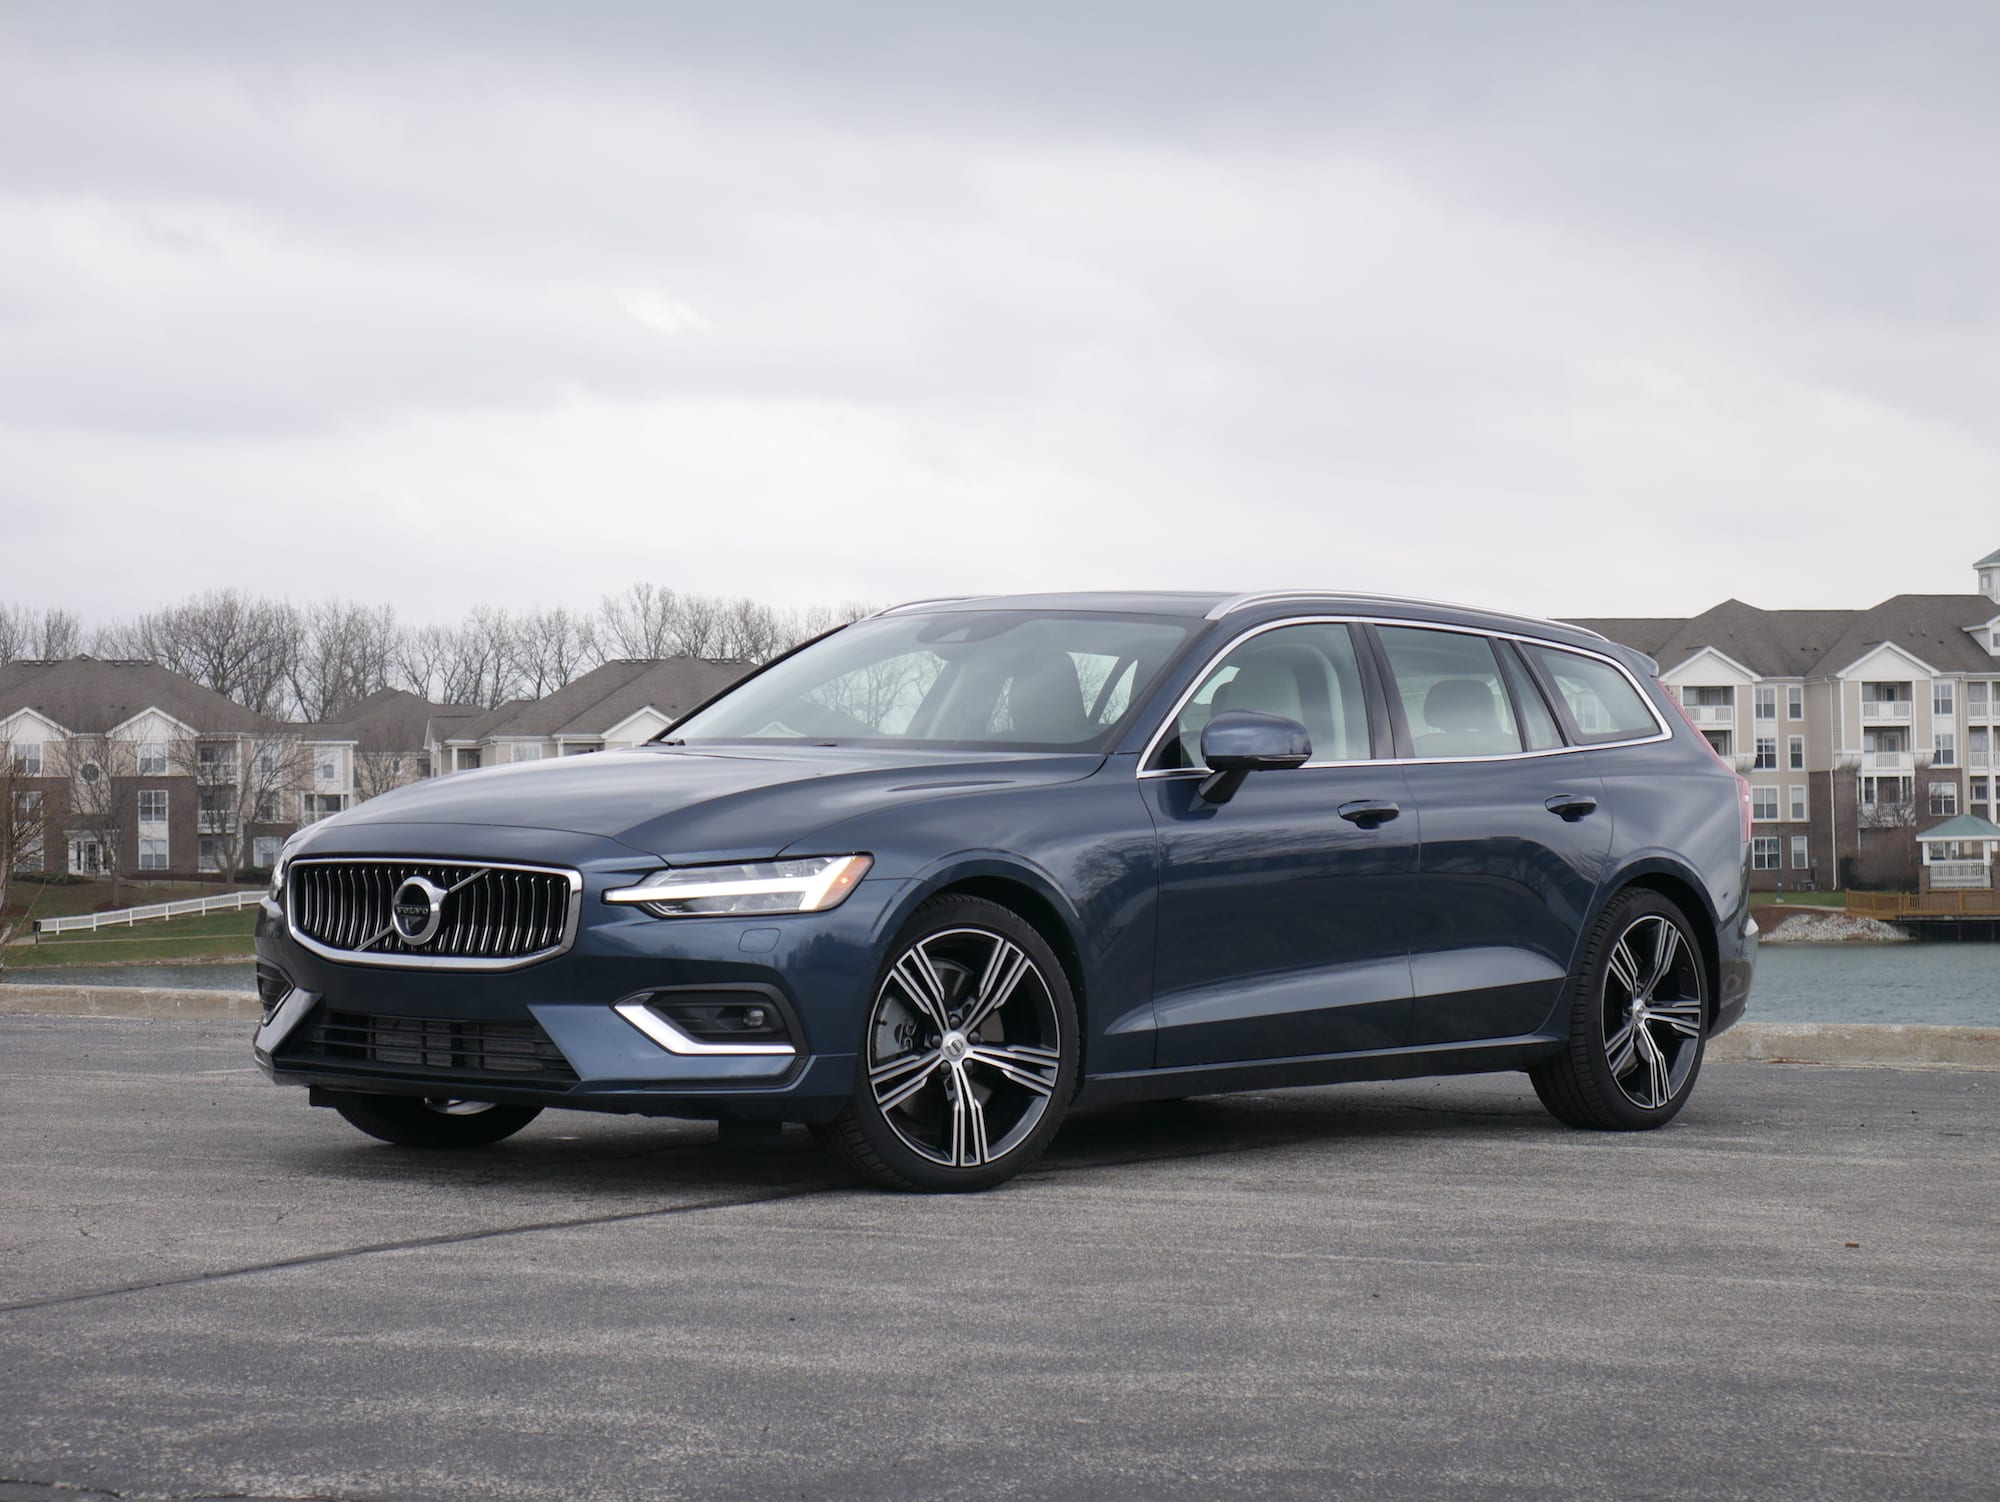 2019 Volvo V60 T6 inscription front three-quarter